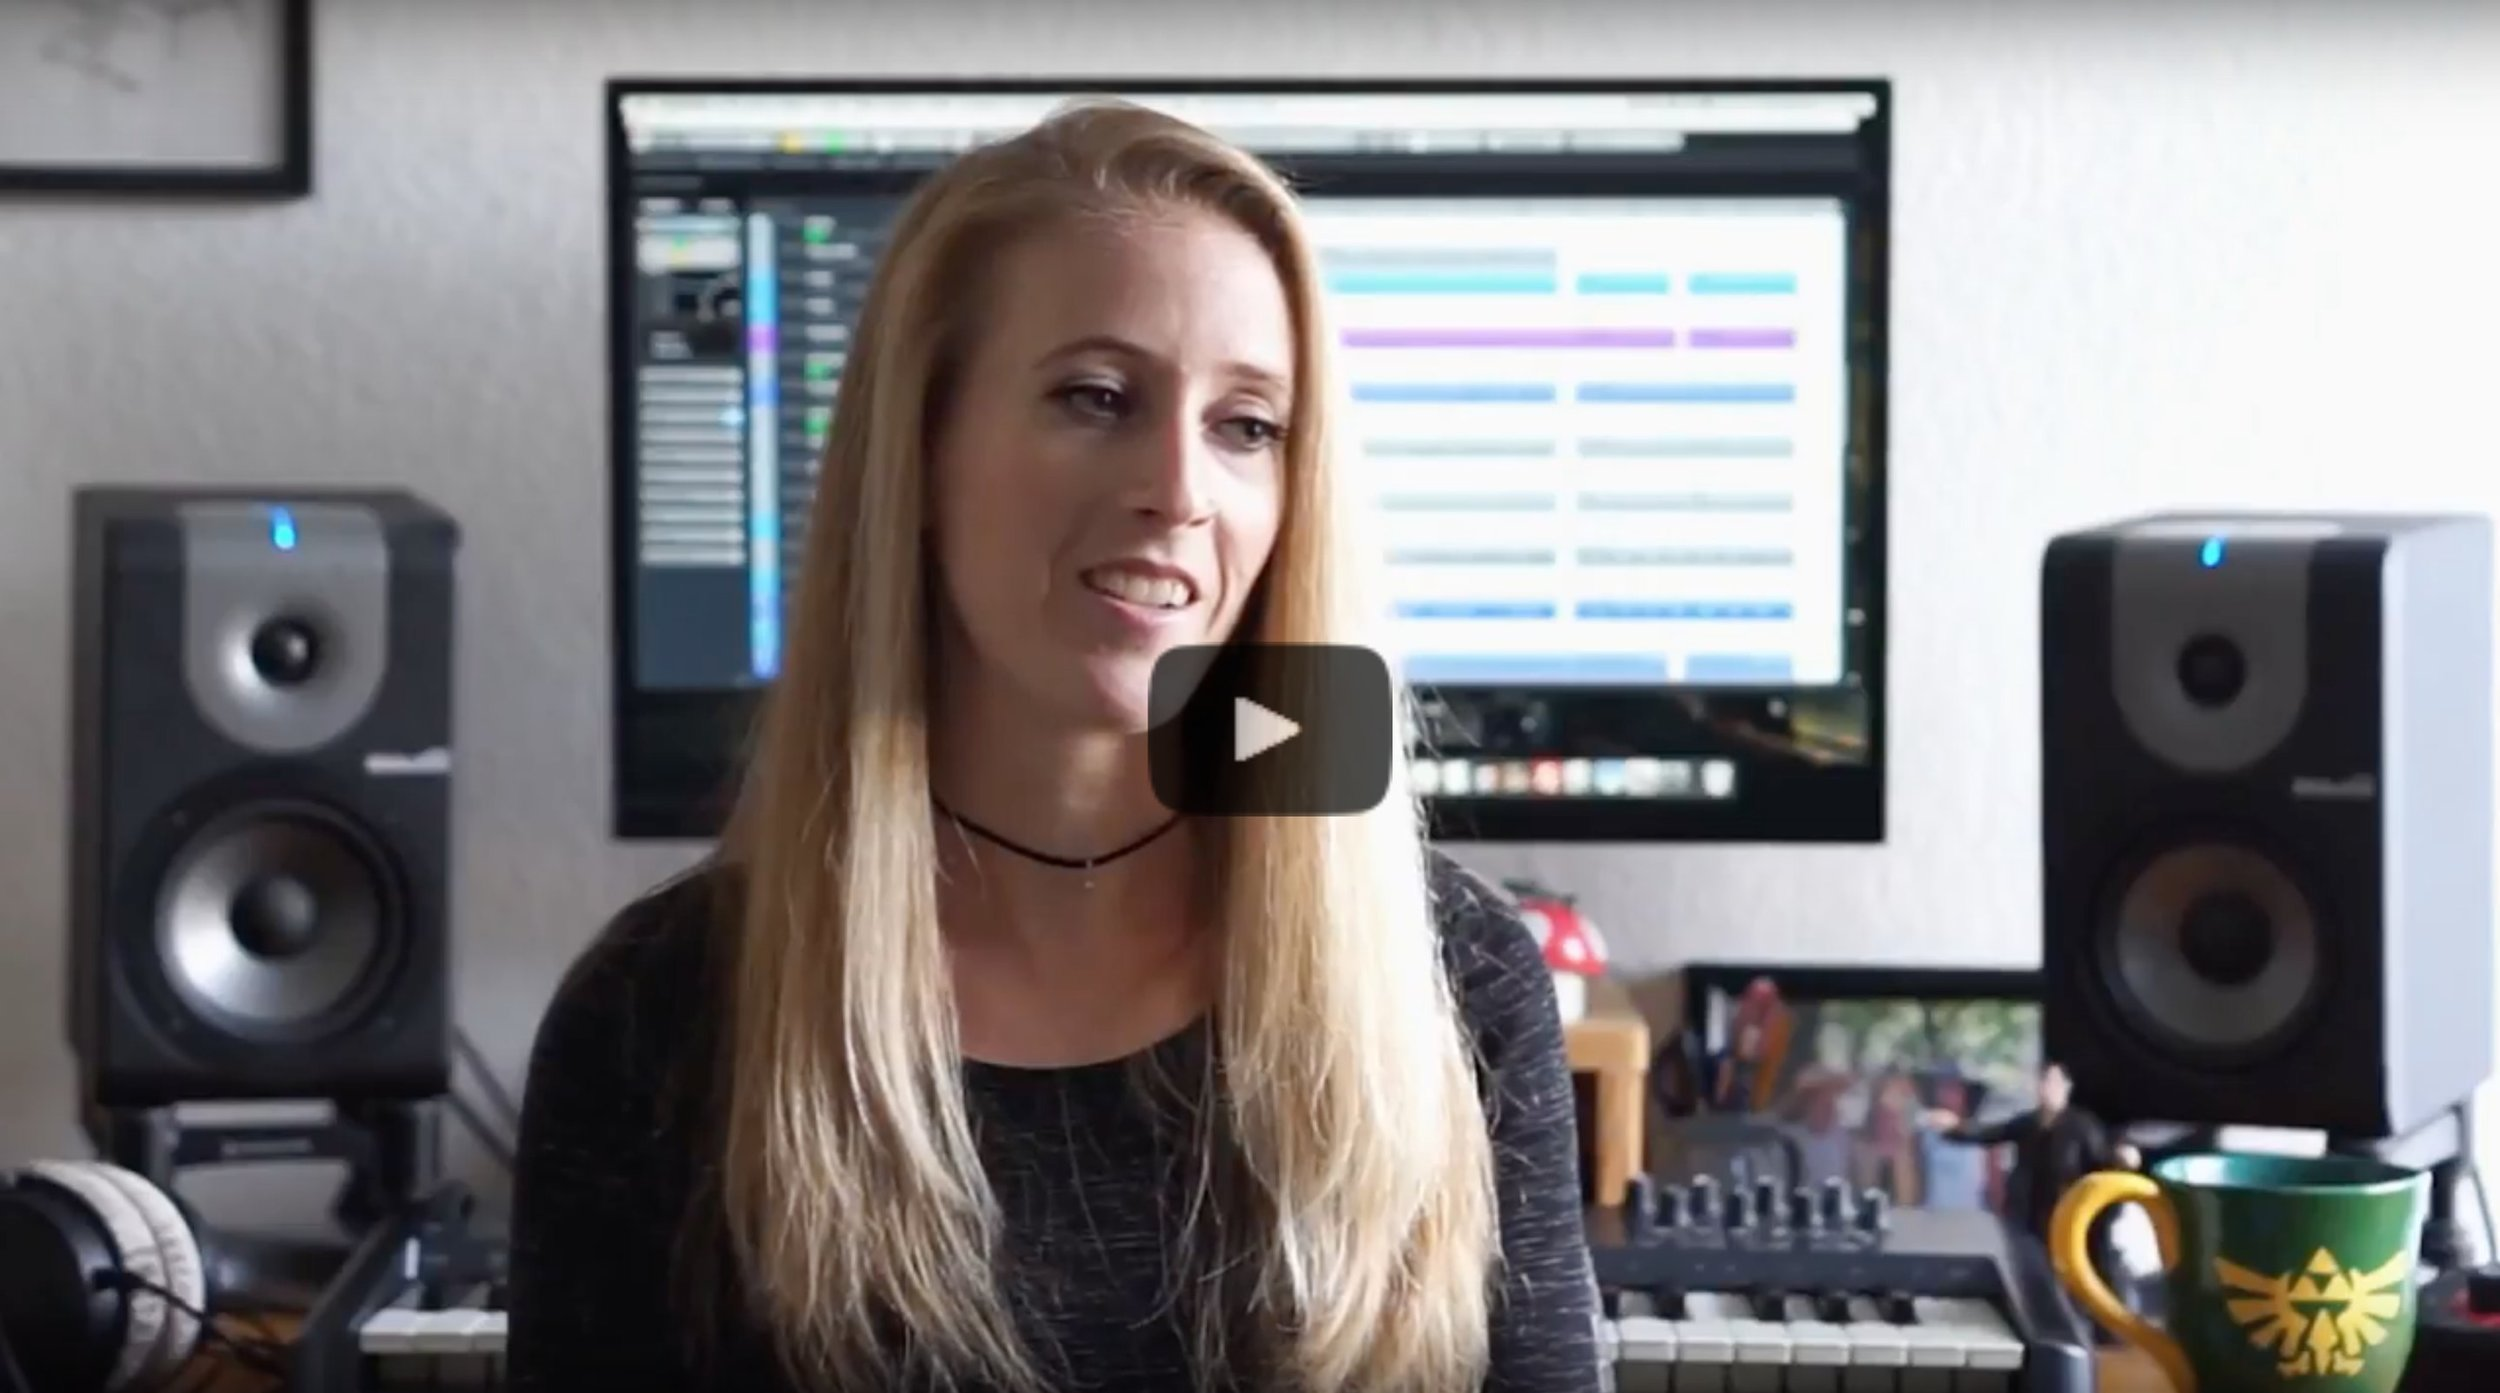 FROM ZERO TO FULL-TIME SYNCS   I love sharing The Art Of The Song Pitch success stories... and this is an especially awesome one. Megan went from losing her job with no syncs to licensing her music full-time in a year!